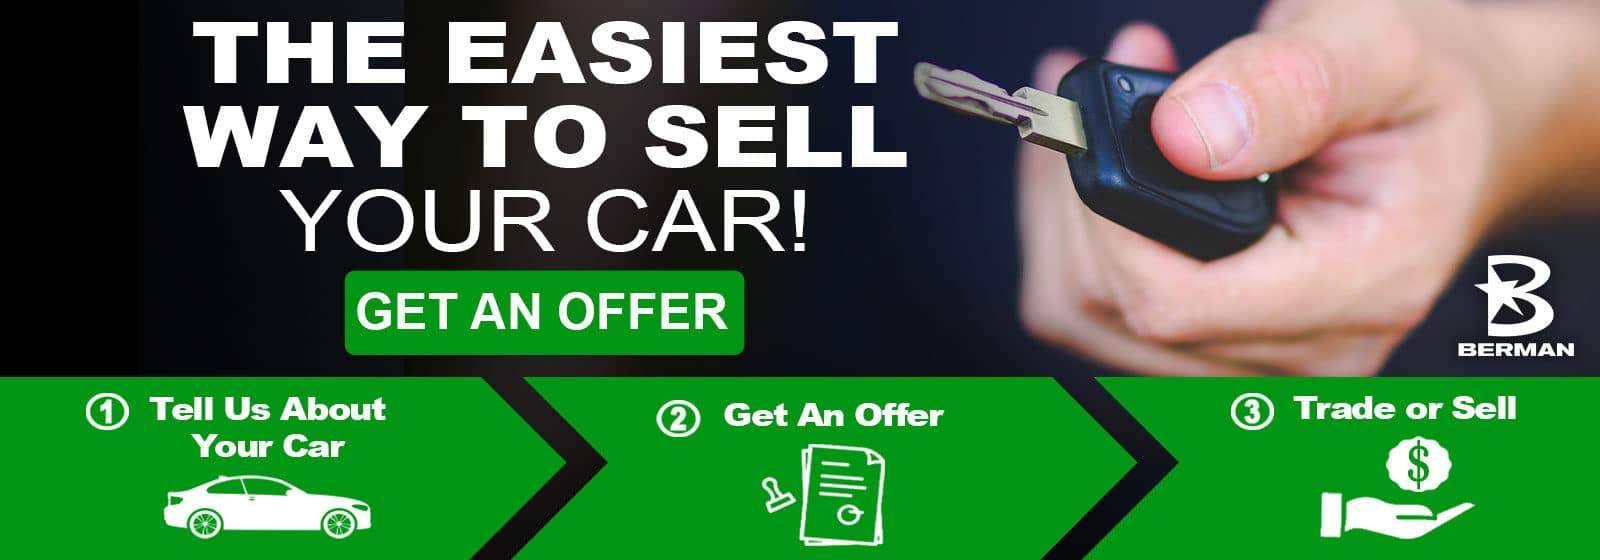 The Easiest Way to Sell Your Car!